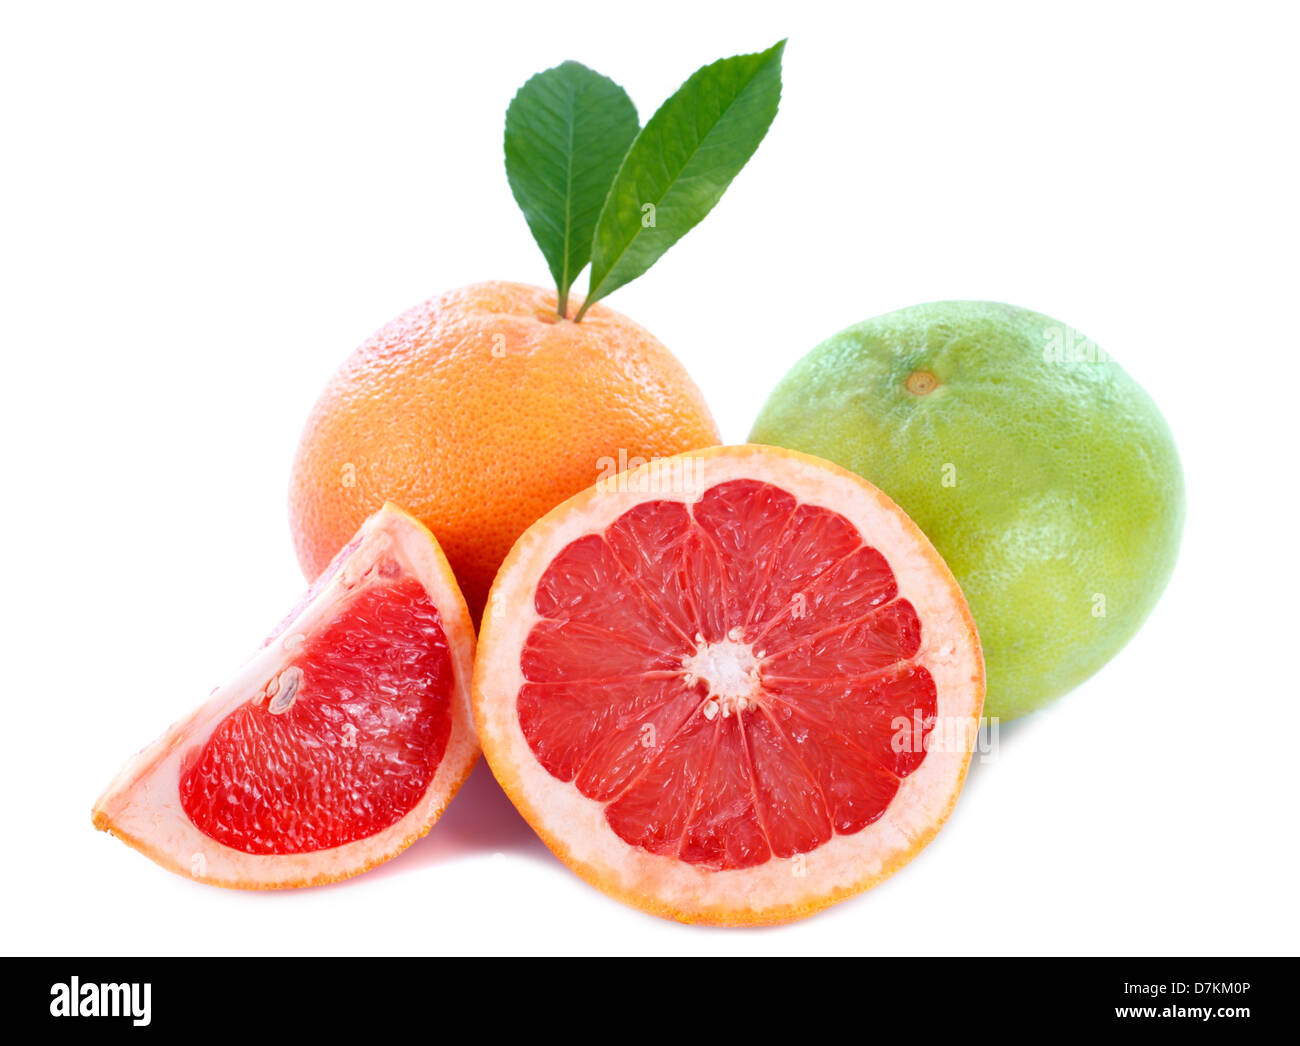 red grapefruit and Jaffa Sweetie isolated on a white background - Stock Image